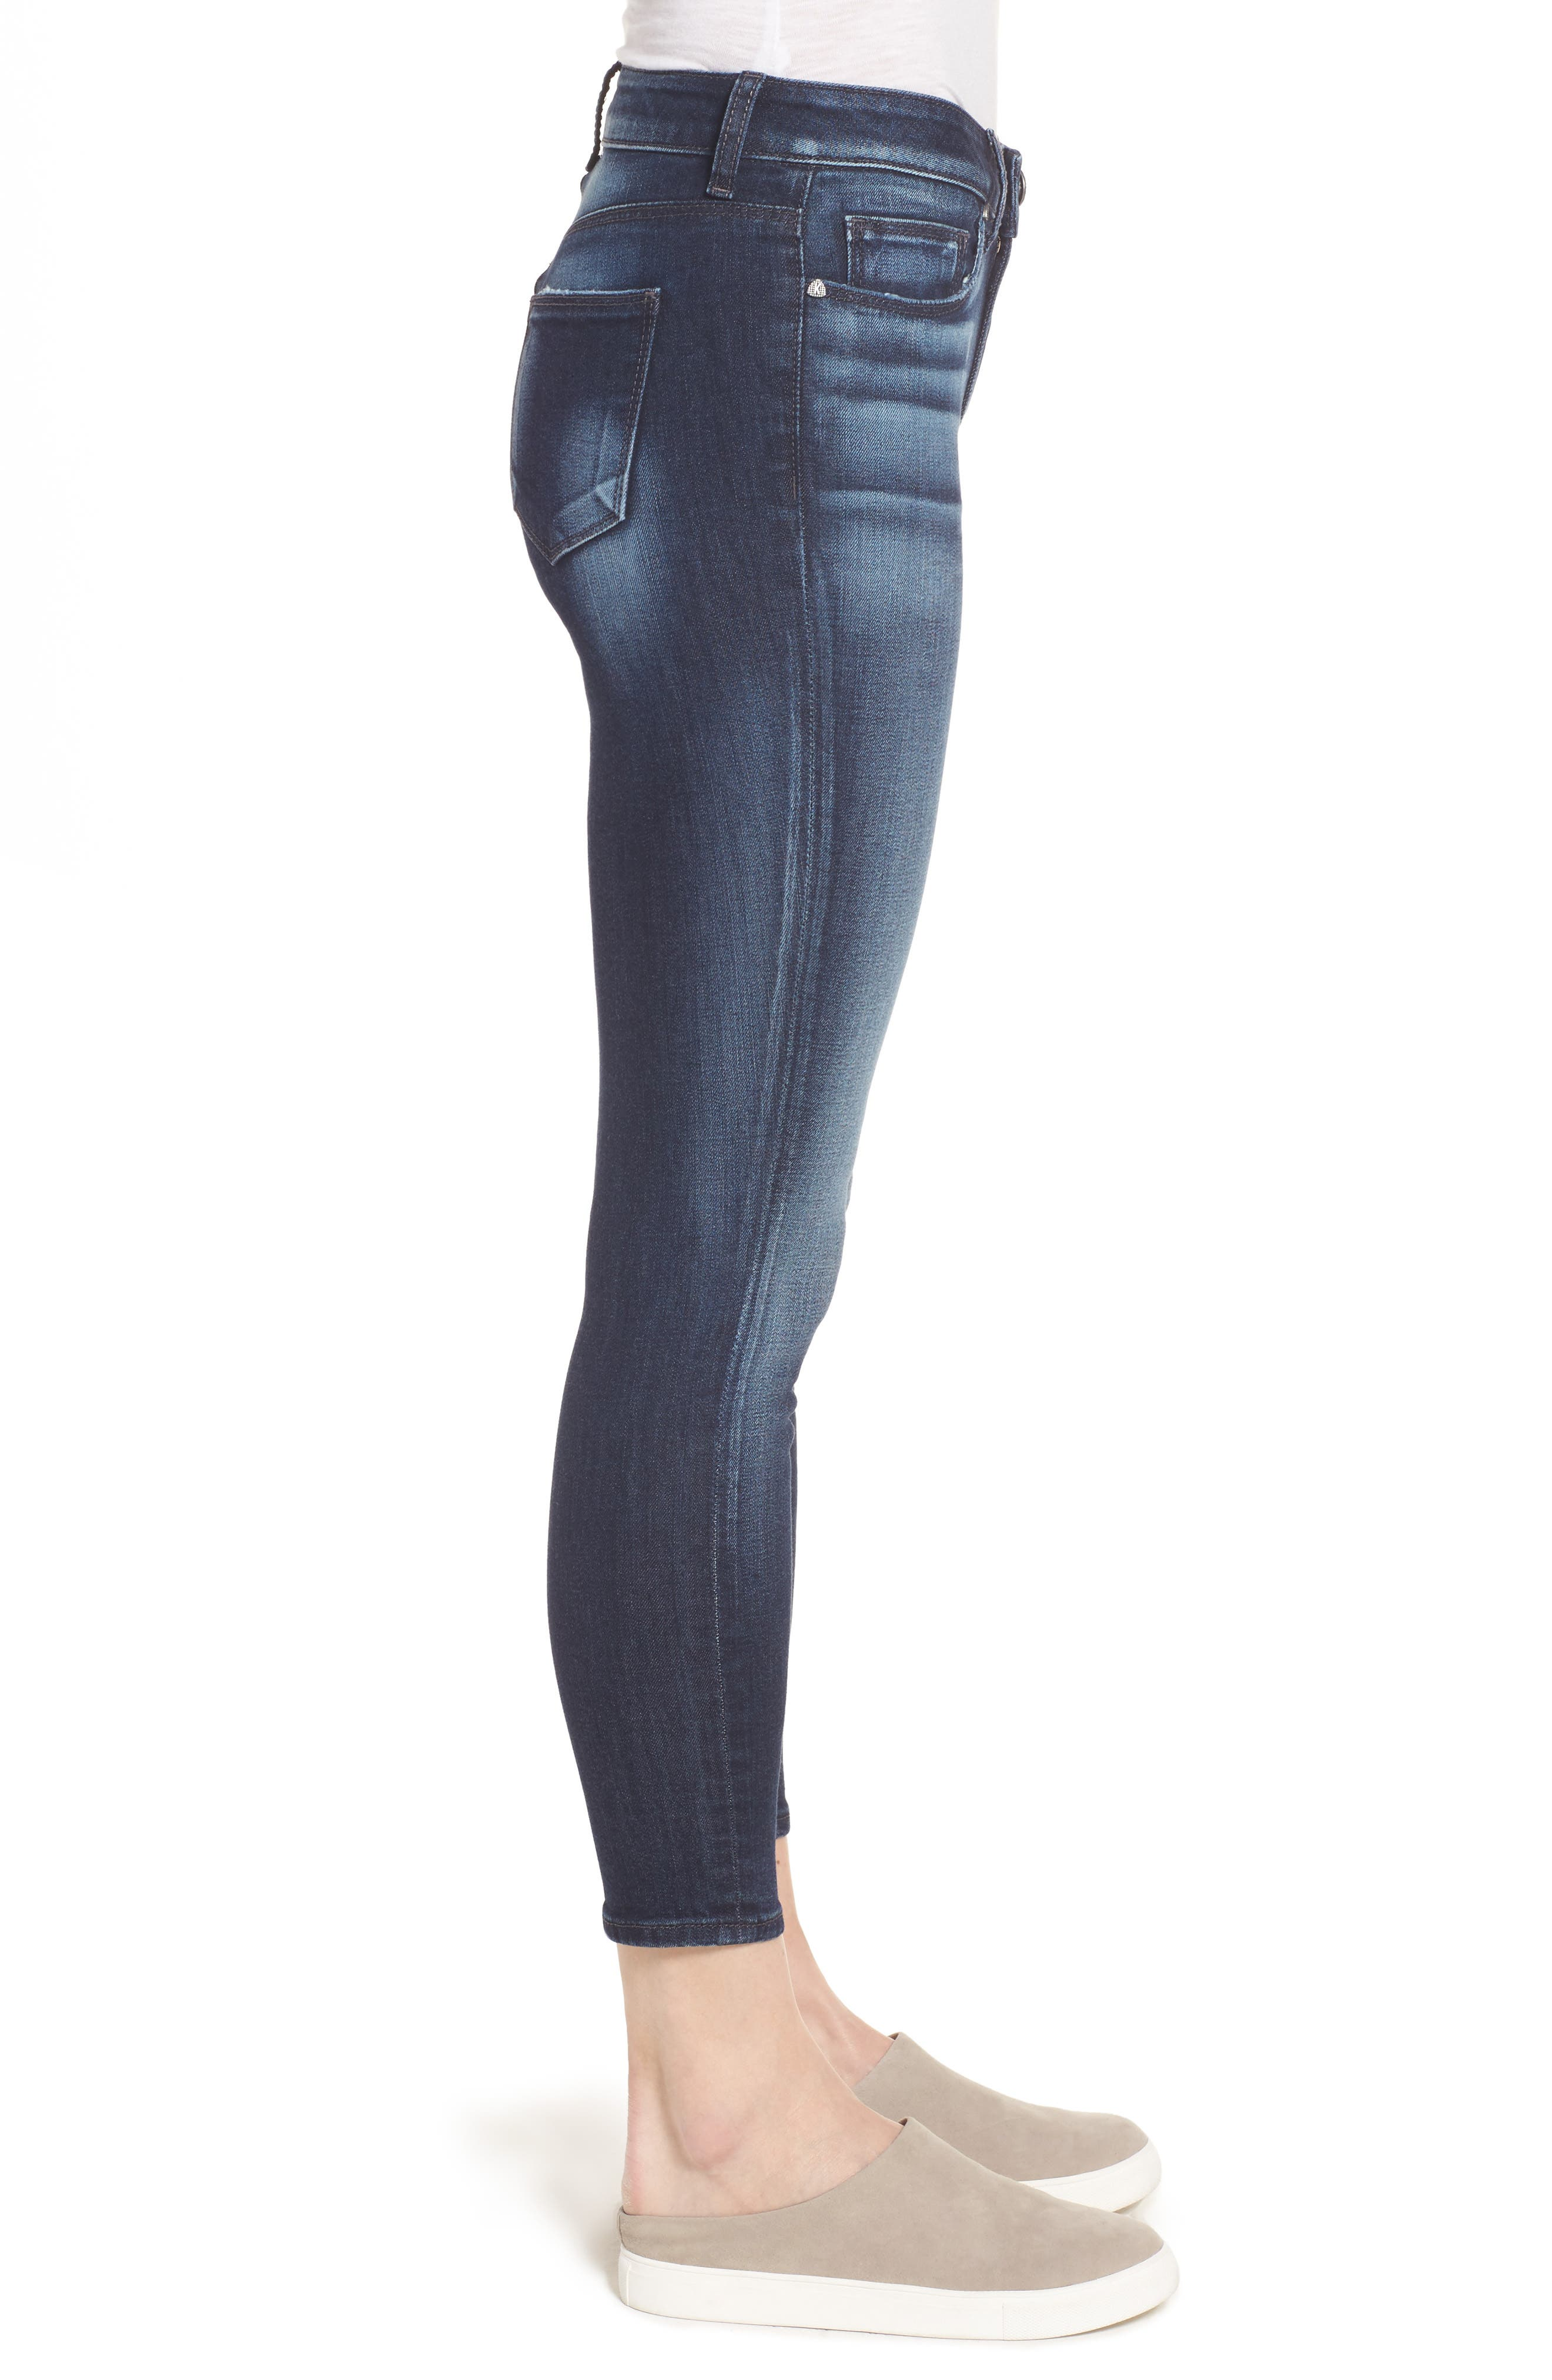 Diana Curvy Fit Crop Skinny Jeans,                             Alternate thumbnail 3, color,                             470